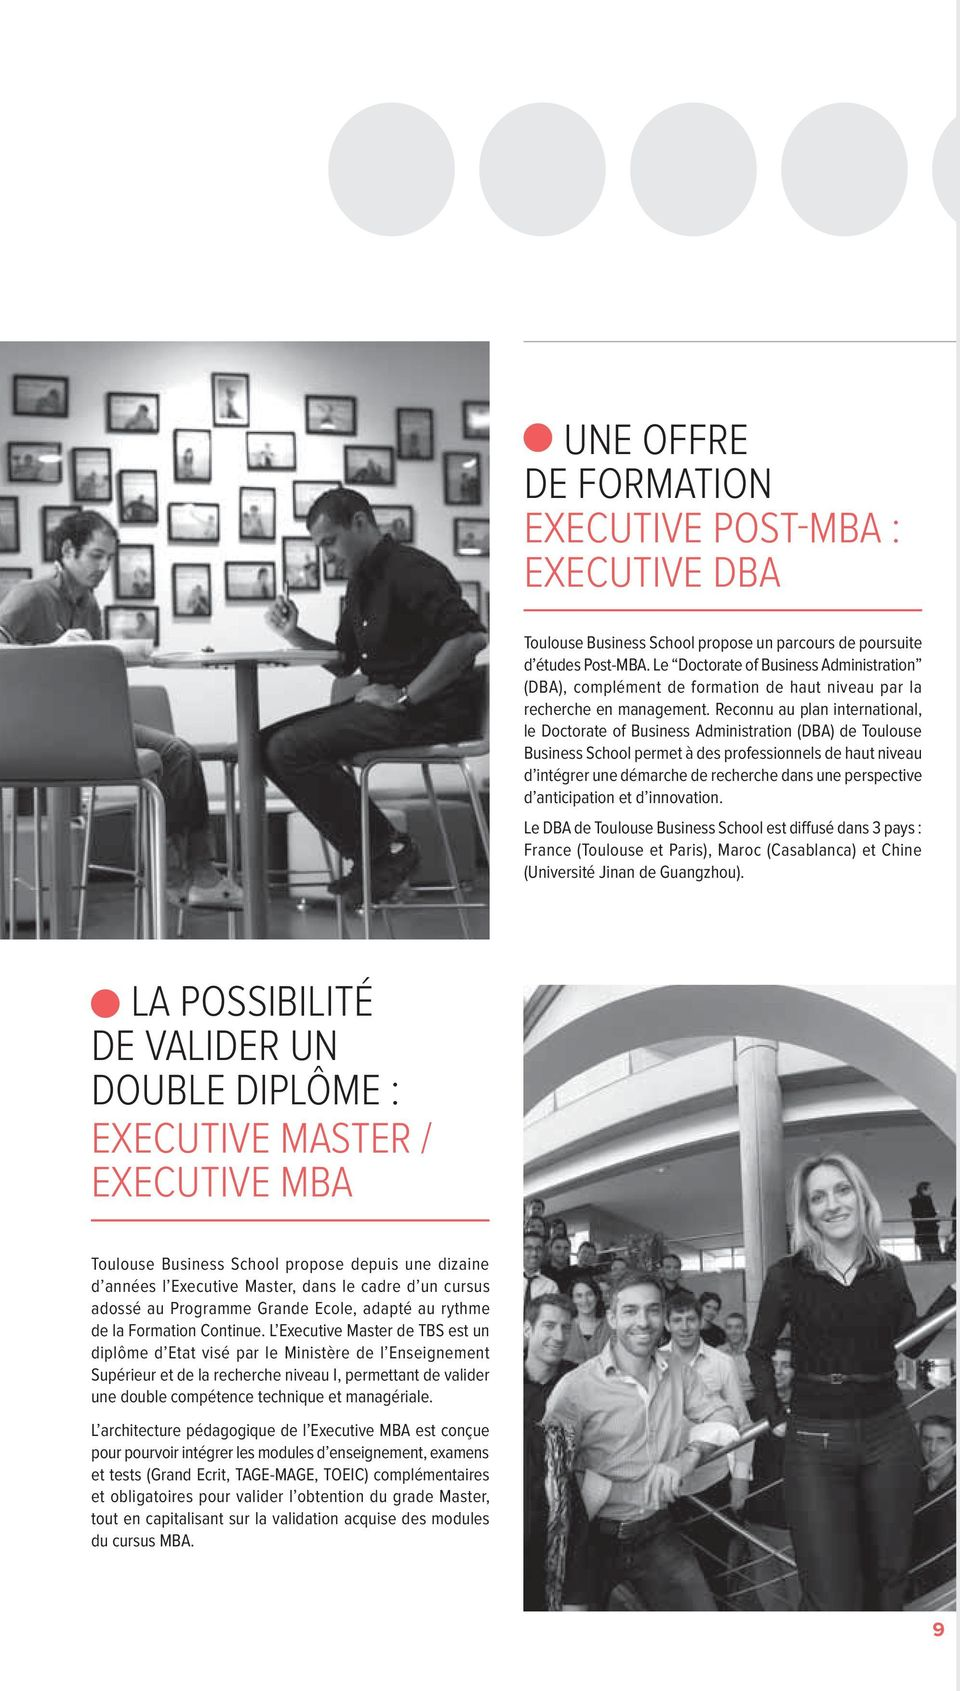 Reconnu au plan international, le Doctorate of Business Administration (DBA) de Toulouse Business School permet à des professionnels de haut niveau d intégrer une démarche de recherche dans une